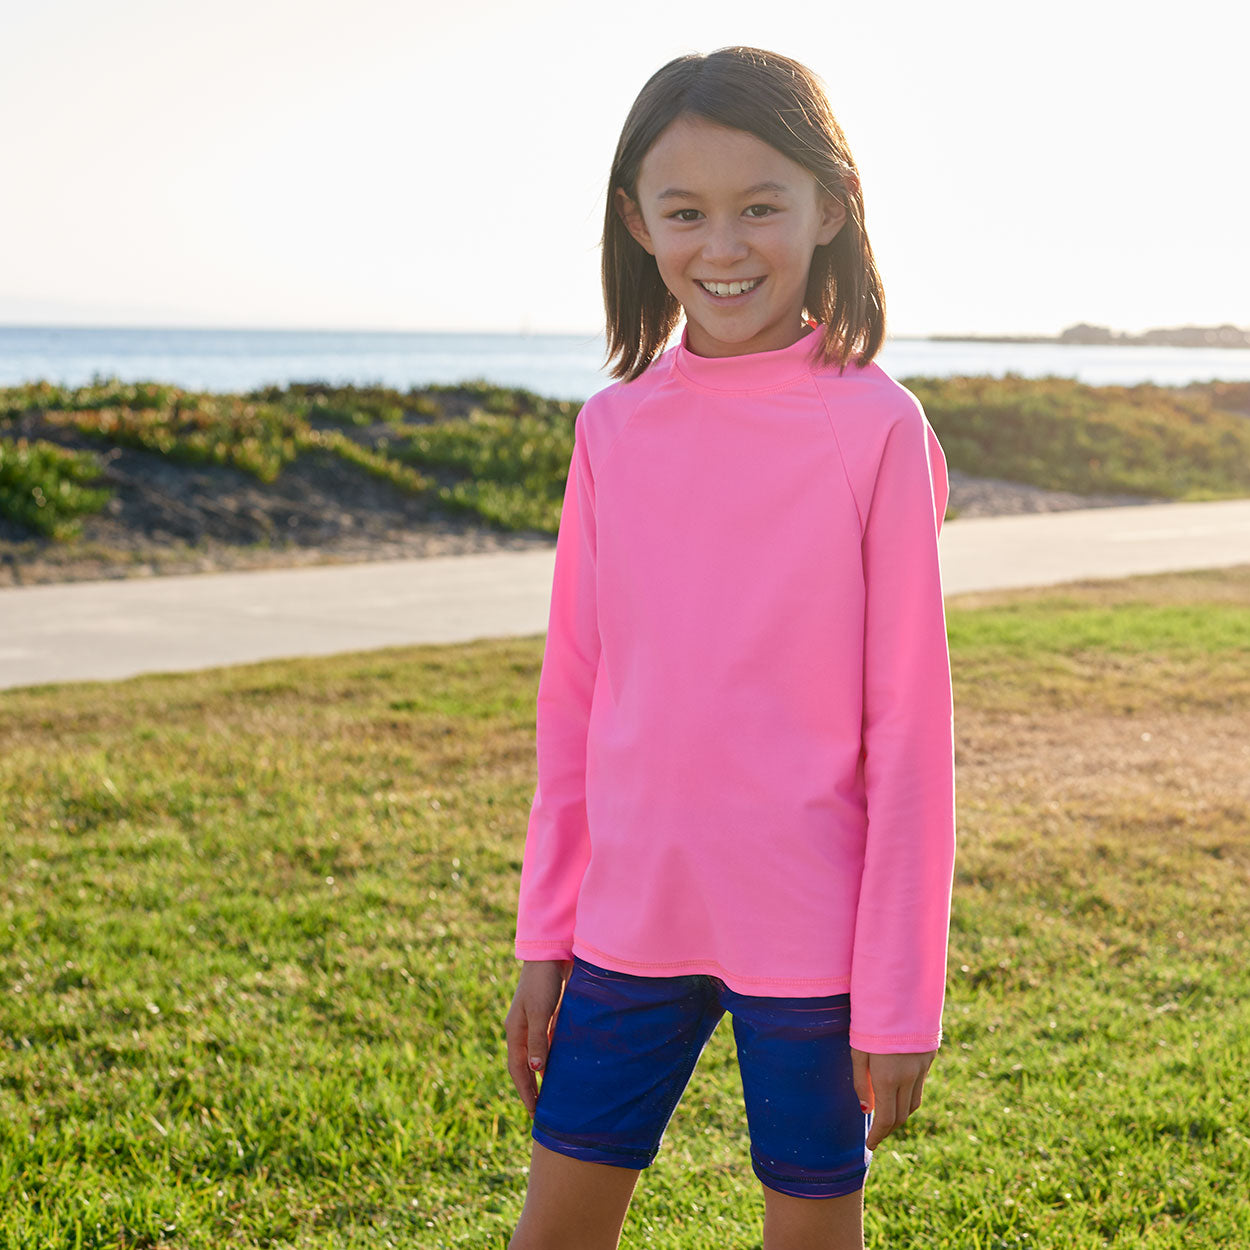 True Pink Girls Long Sleeve Rash Guard Top Upf50 Size 2 12 Girl Smiling Wearing a True Pink Top on the Park Sunpoplife